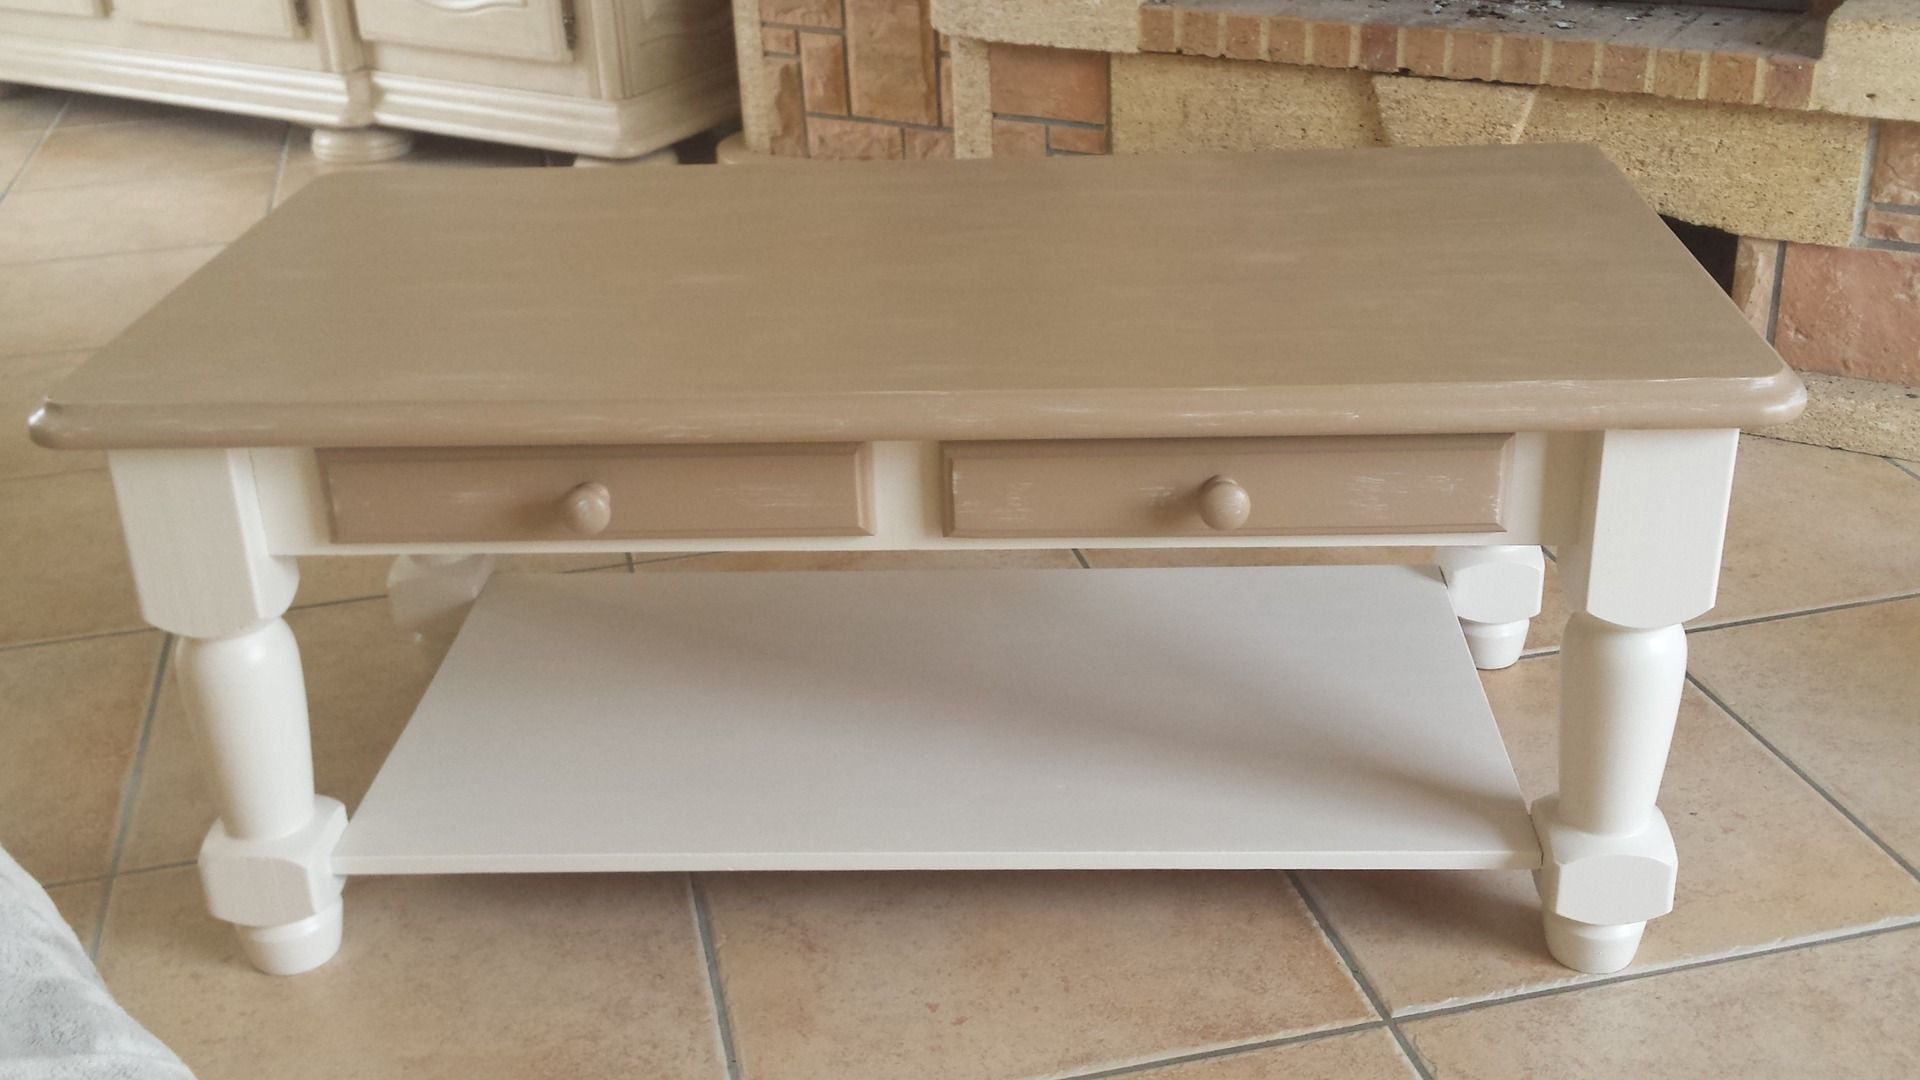 Service Relooking Table Basse Blanc Taupe Meubles Et Rangements Par Celydeco Relooking Mobilier De Salon Table Basse Bois Blanc Customiser Table Basse Ikea